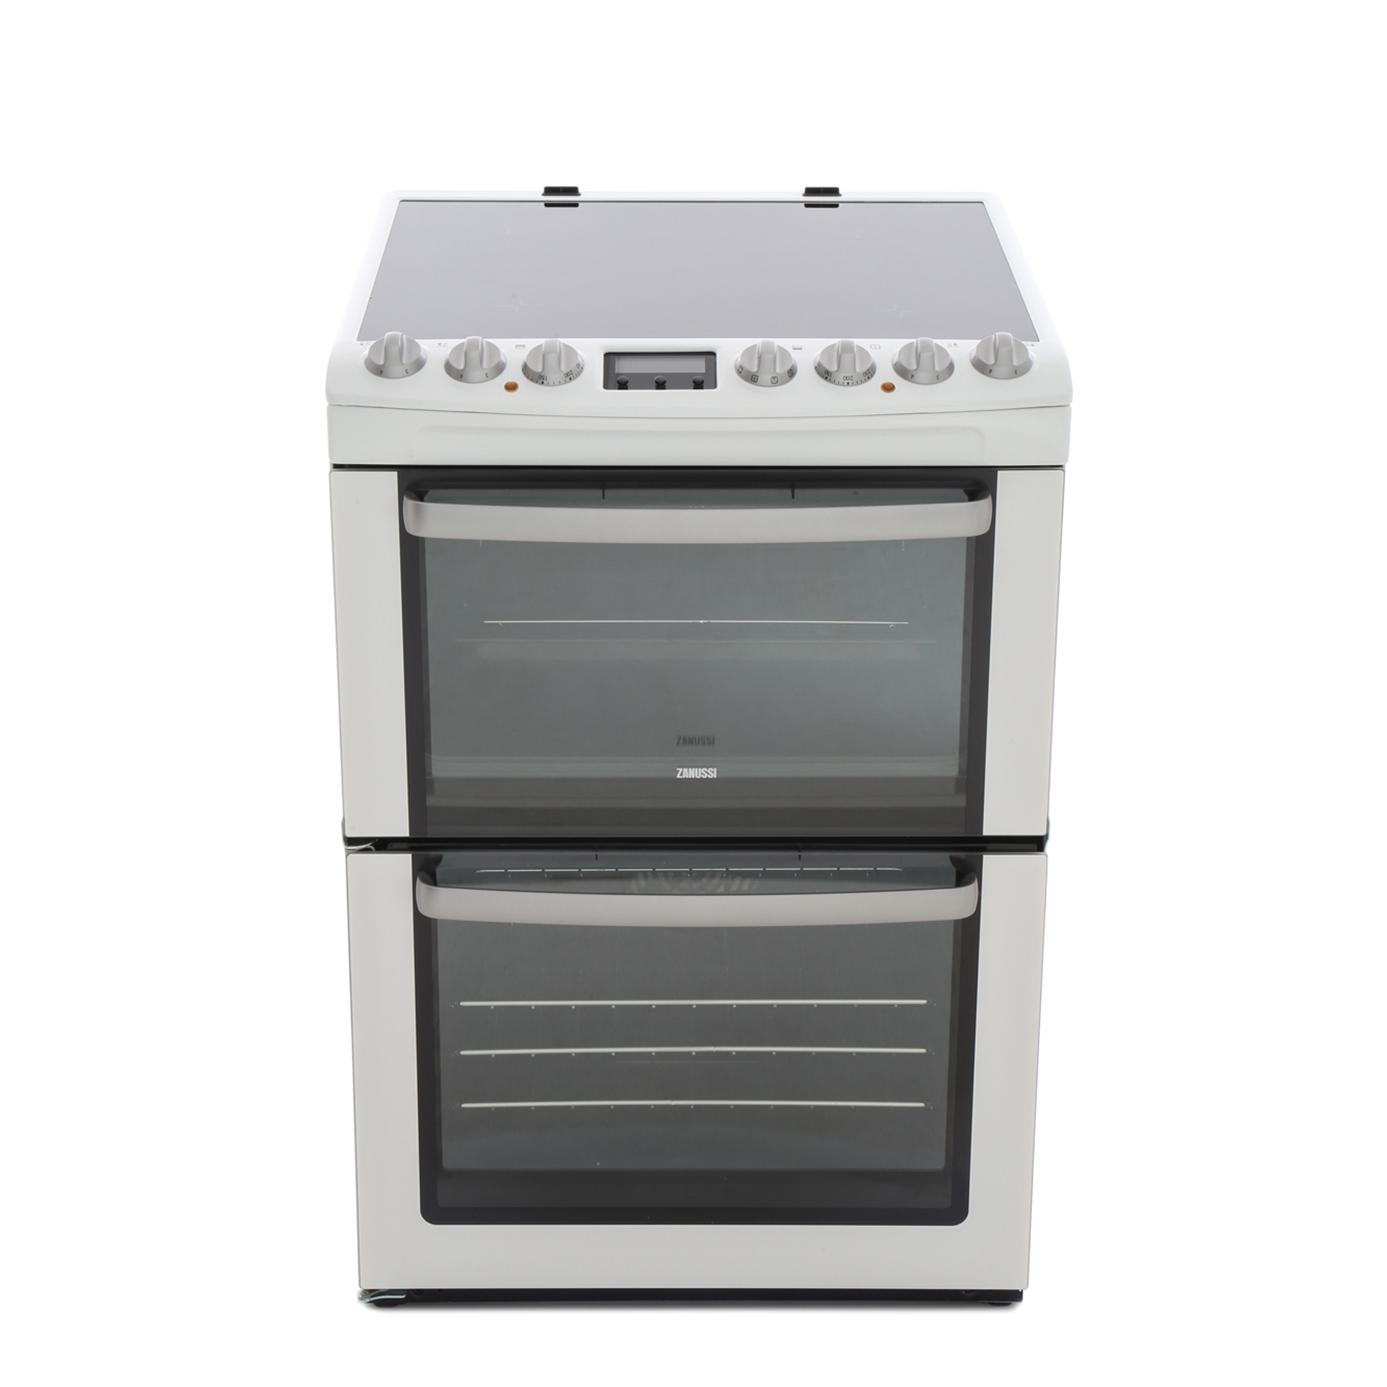 Zanussi ZCV66AEWC Electric Cooker with Double Oven